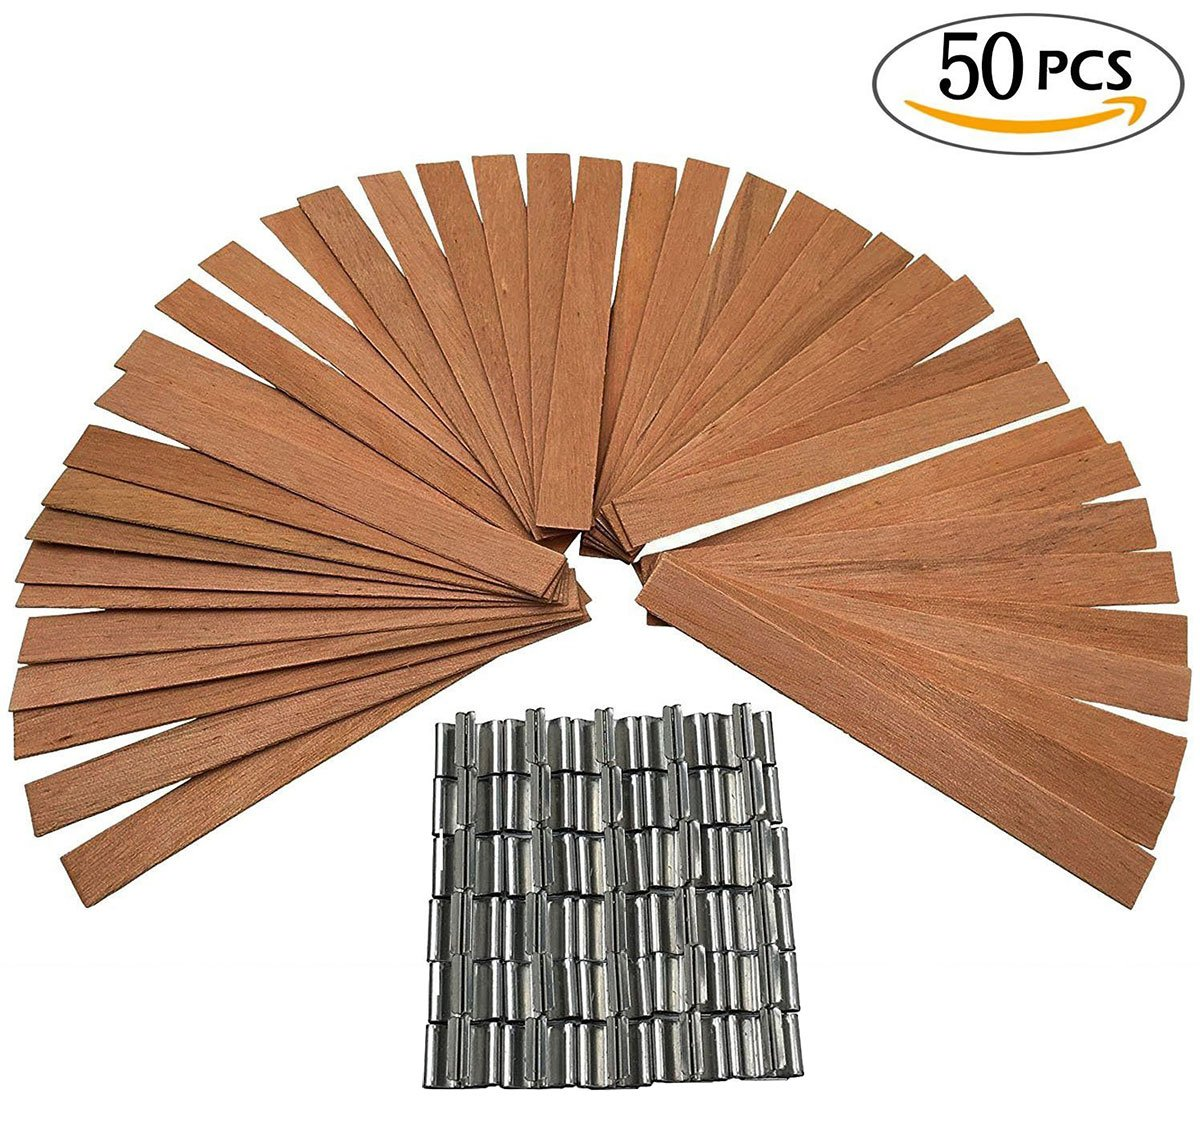 JoinPro 50 Pieces Wood Candle Wicks Low Somke Core with 50 Sustainers Tabs for Candle Making and DIY Crafts (3x0.5 inches)